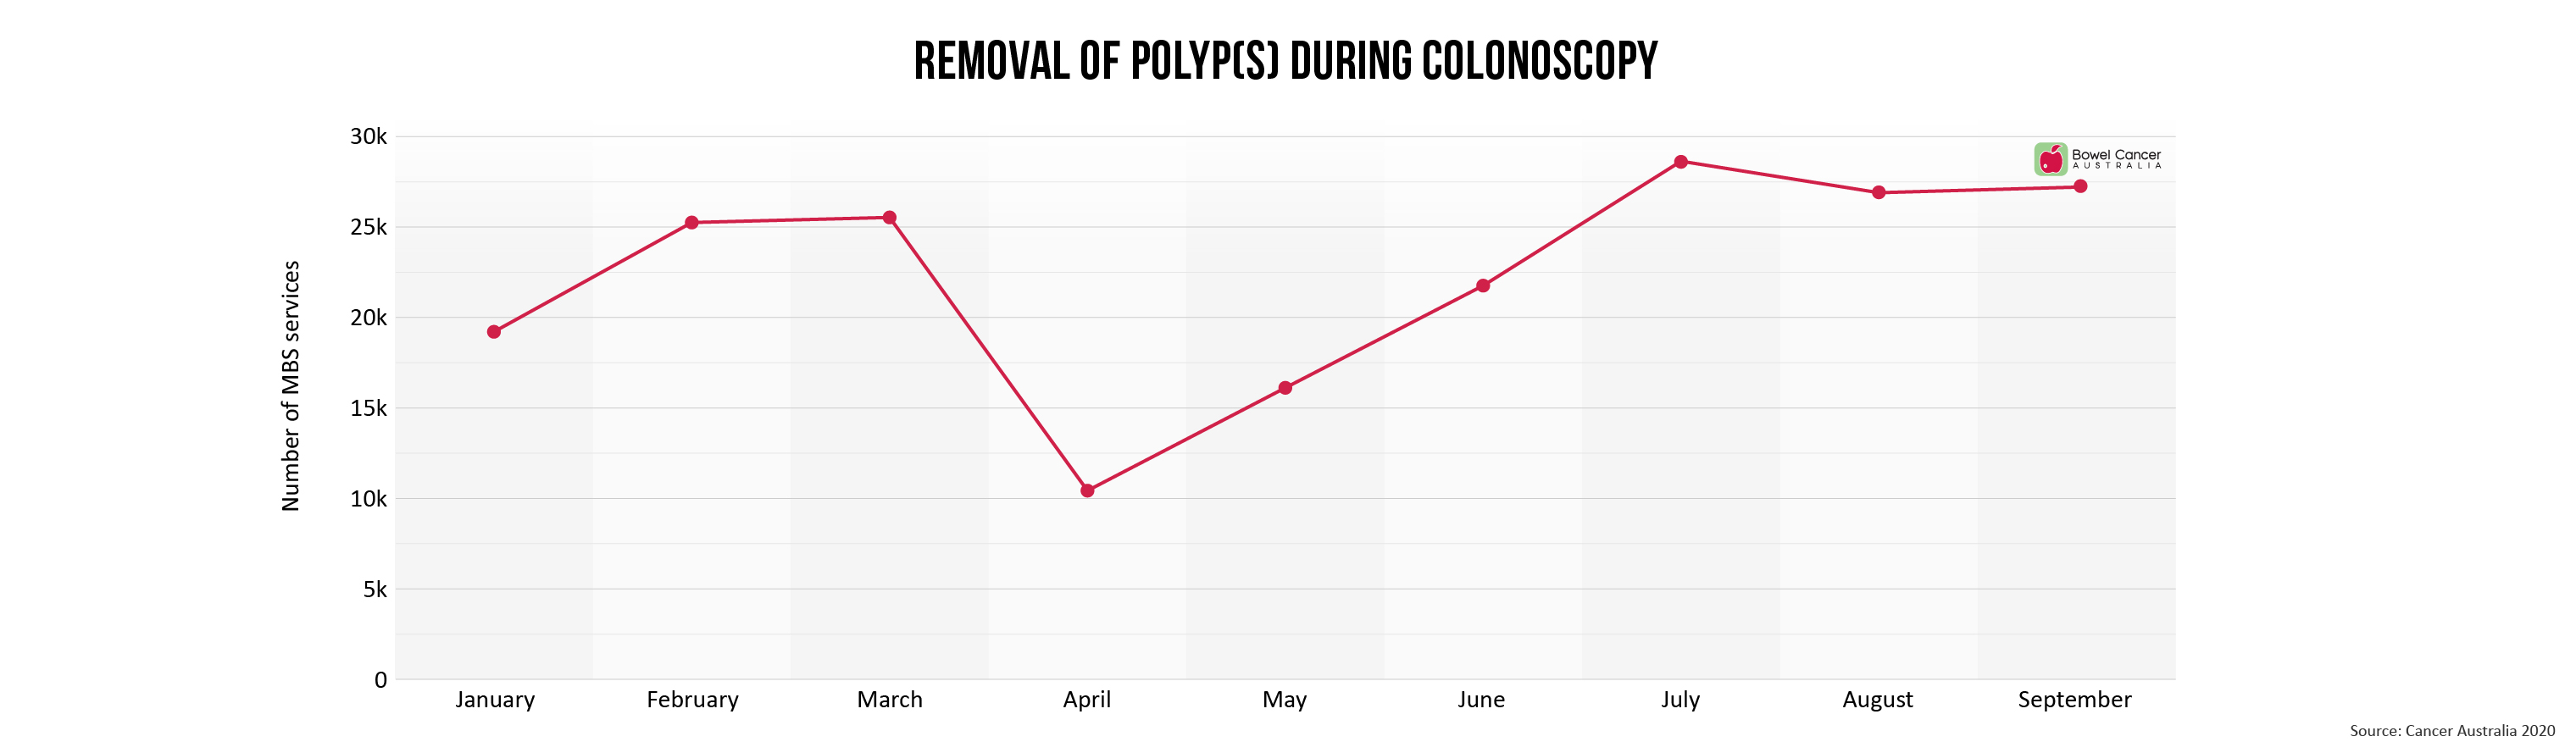 Removal of polyp(s) during colonoscopy